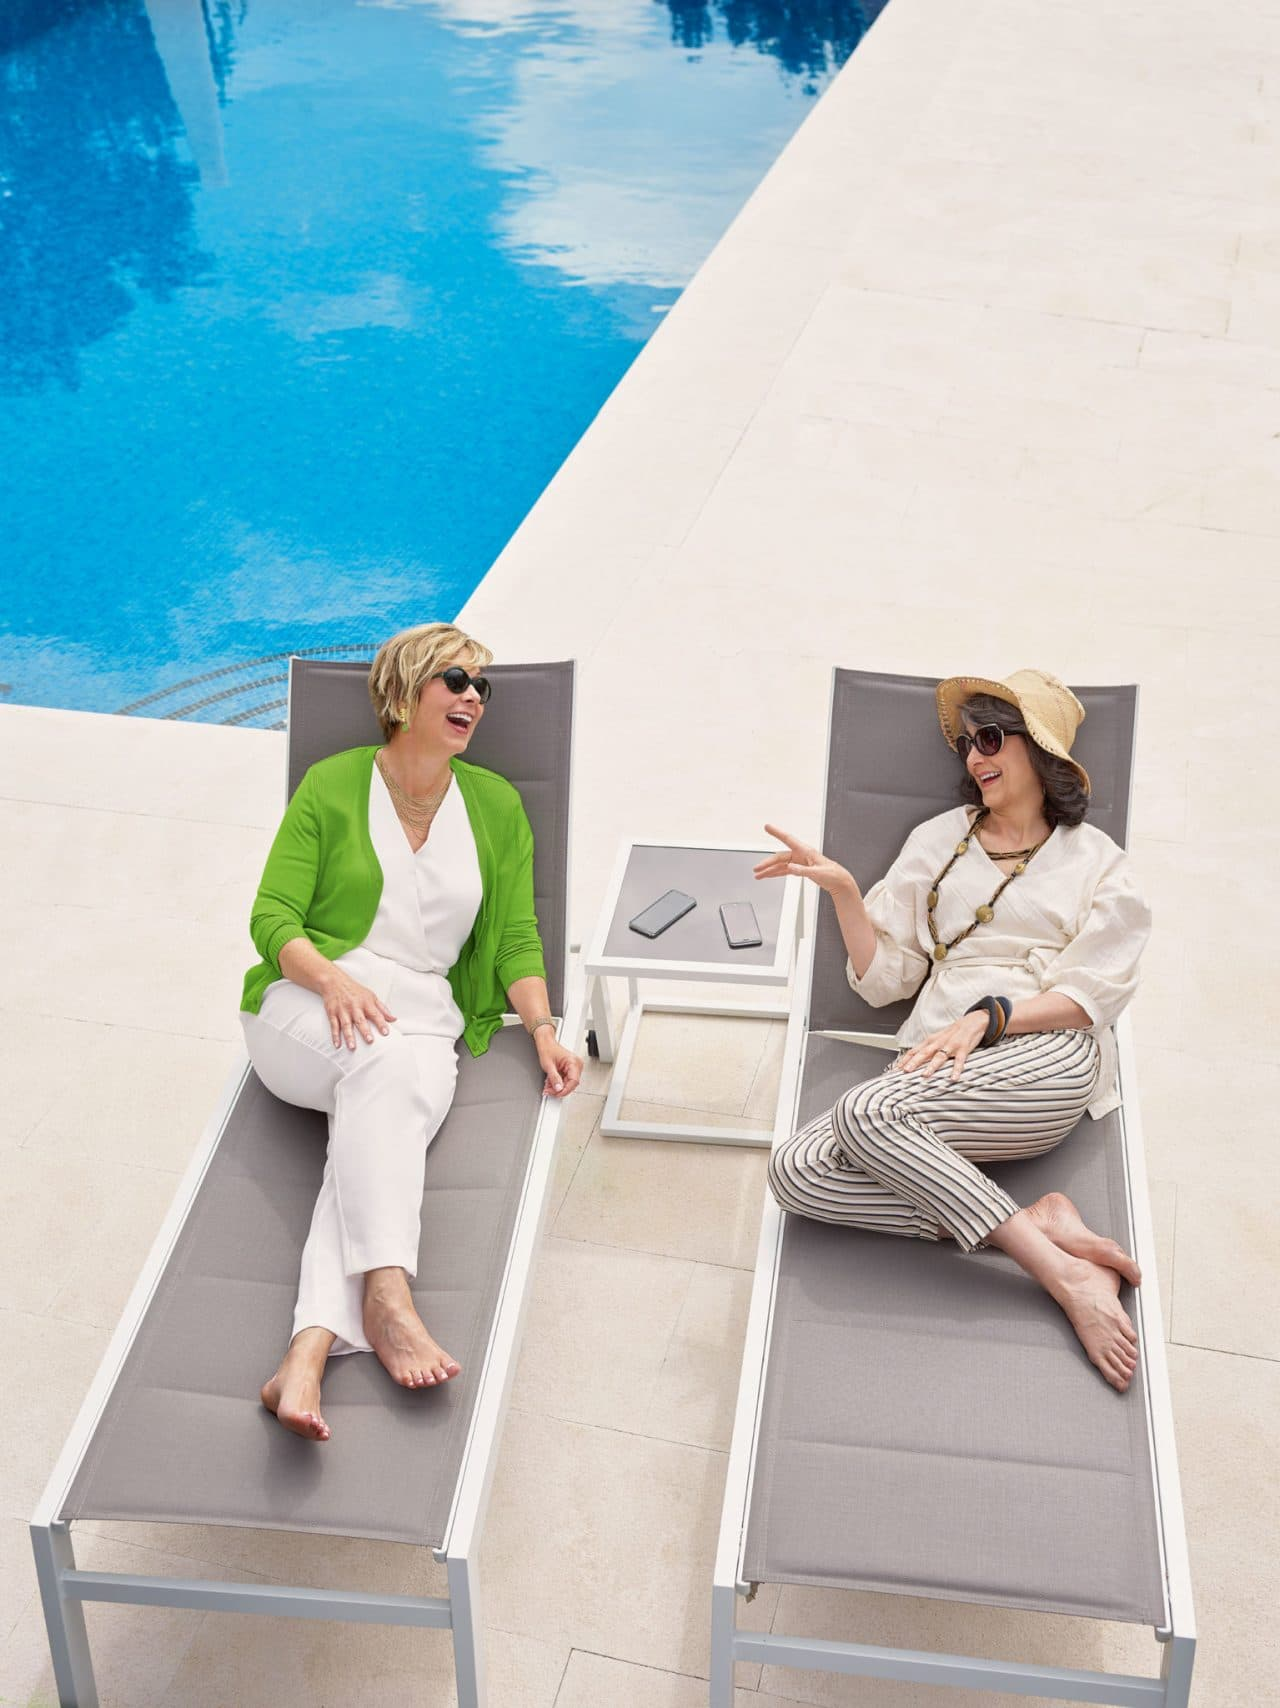 Photo of two women talking and smiling next to a pool